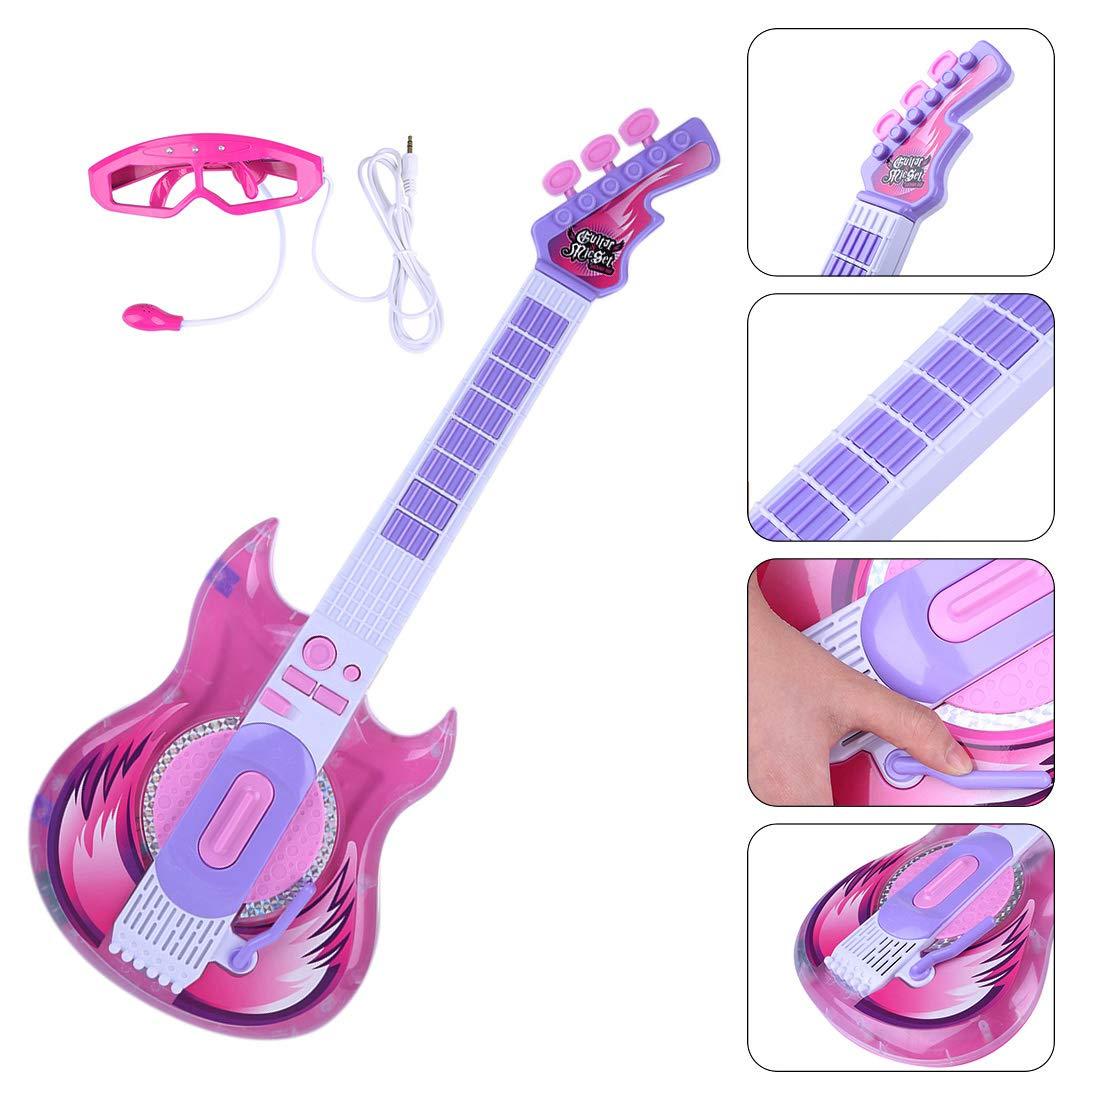 Cheap Yamix Kids Guitar Toy Guitar for Girls Boys Electric Guitars Toys for Kids Music Instruments Educational Toys with Glasses Microphone Black Friday & Cyber Monday 2019